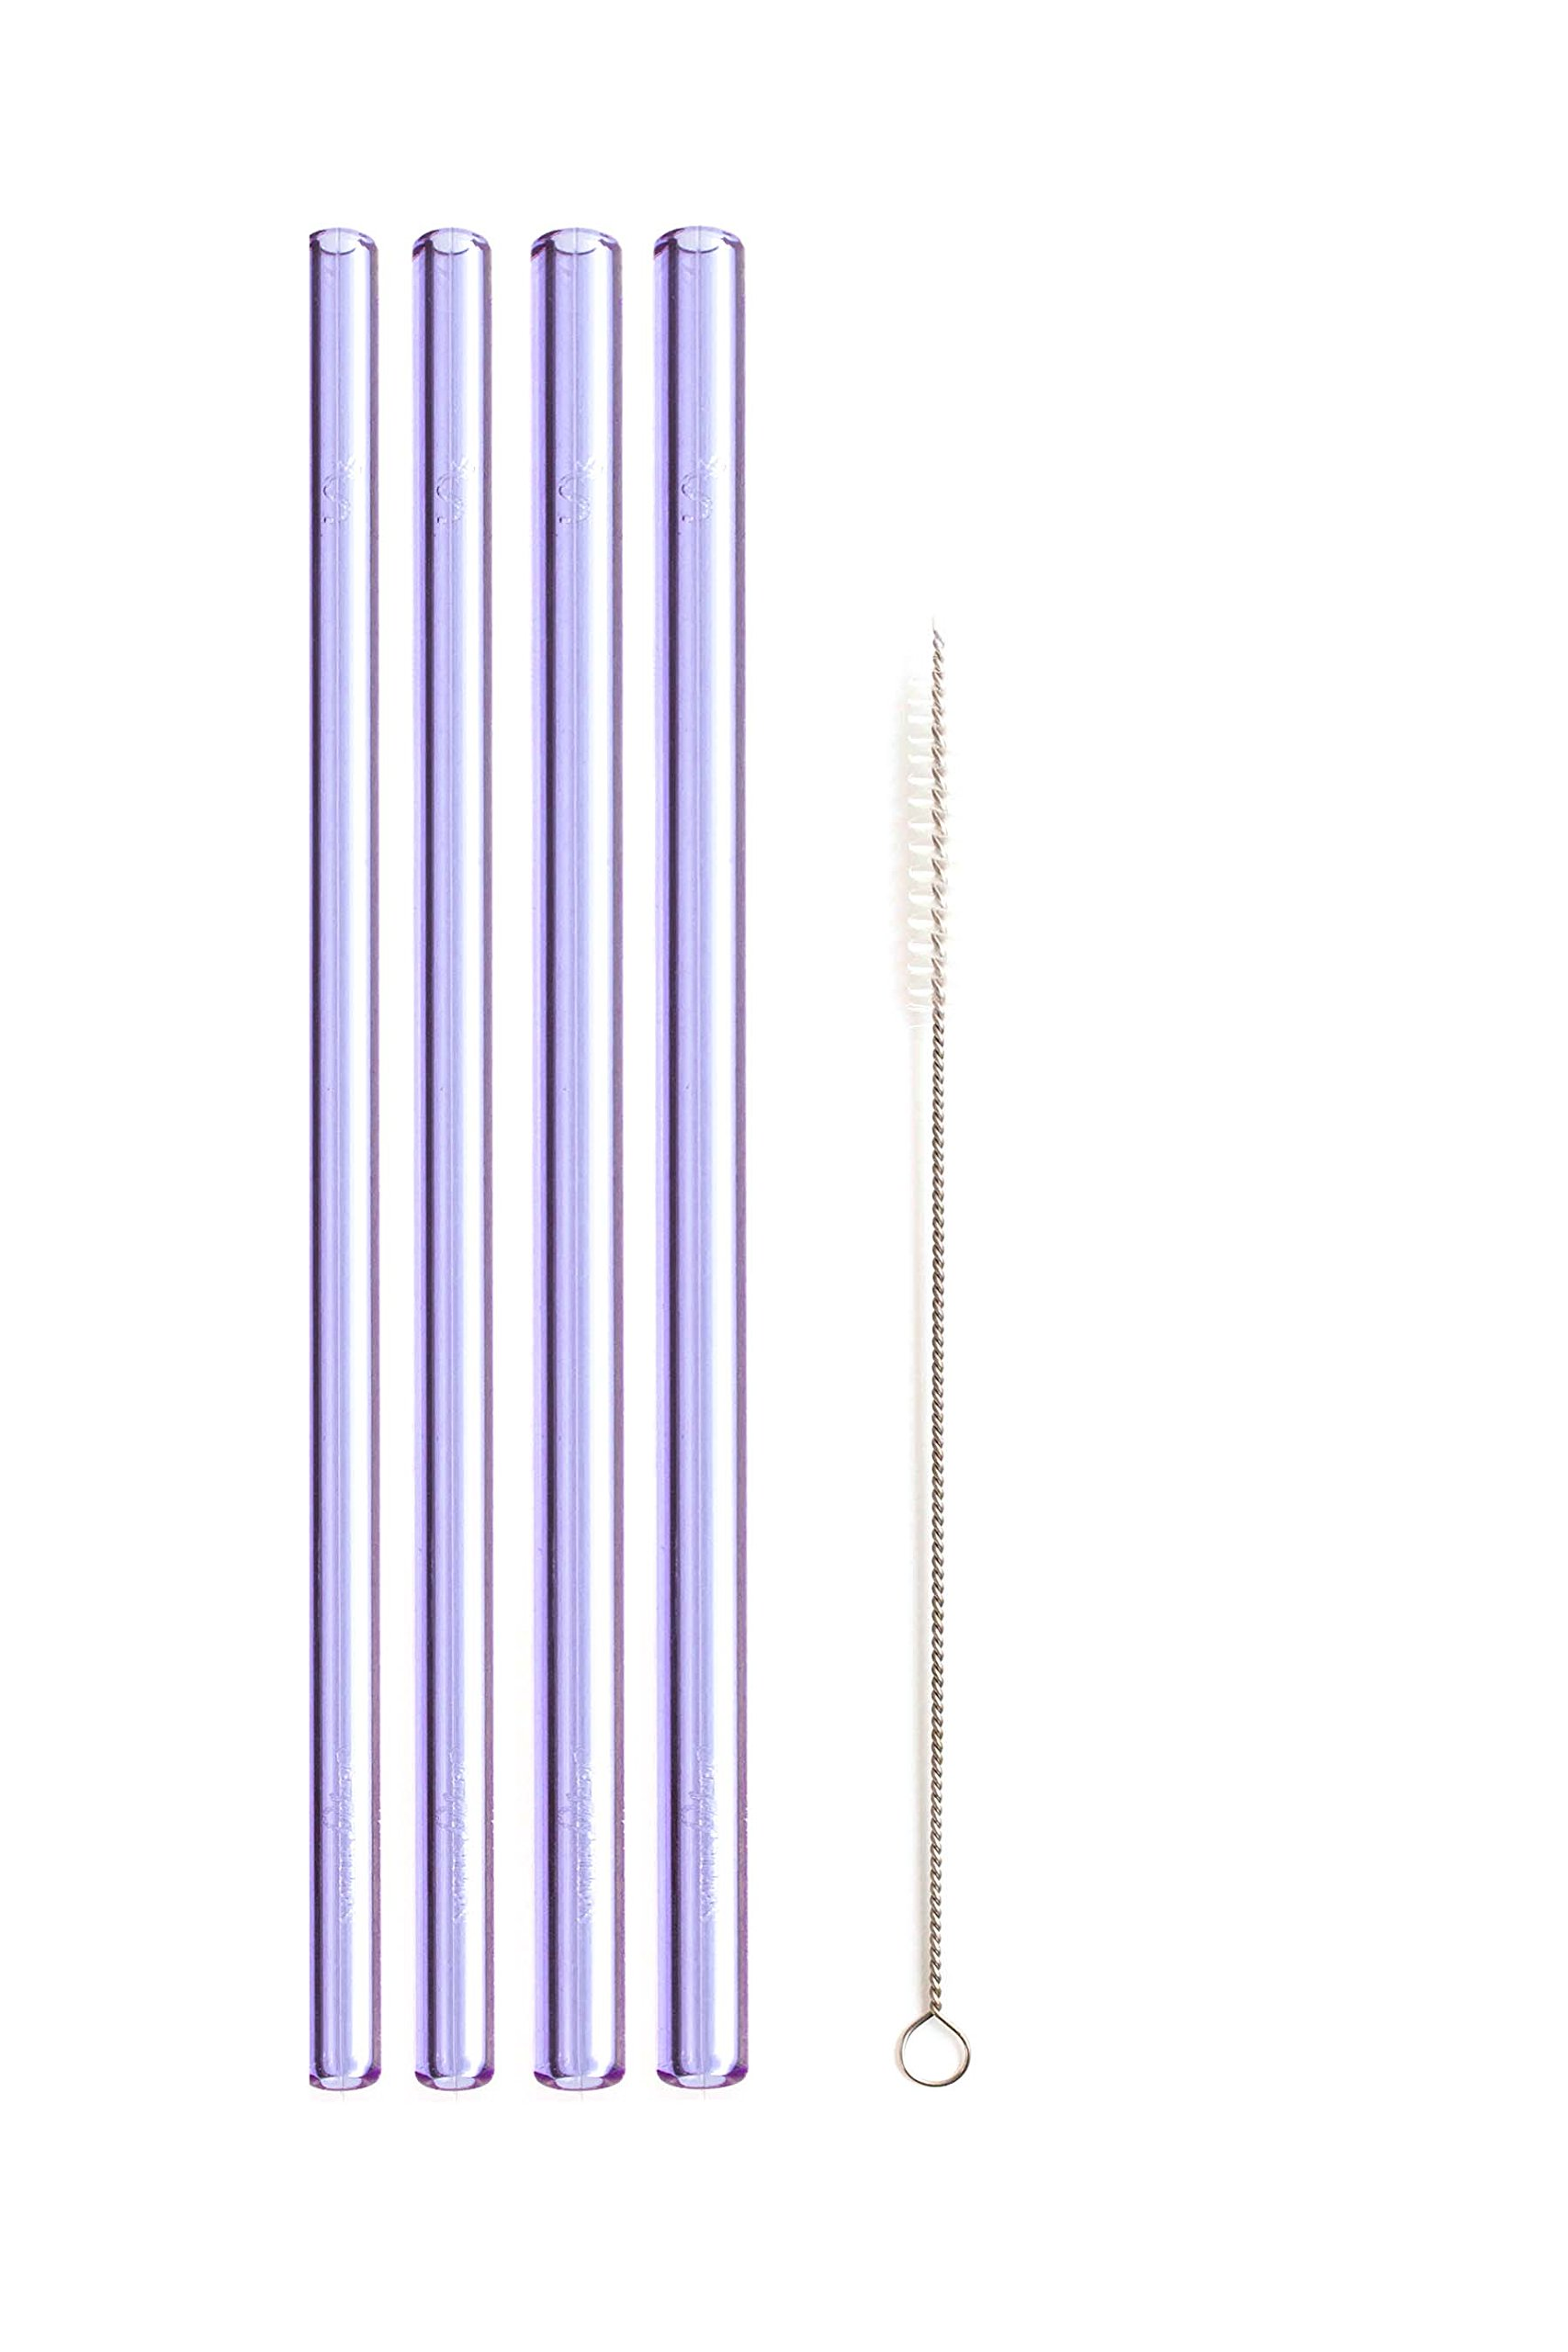 Simply Straws Straight 2 Classic & 2 Wide 8''+ Brush (Amethyst) by Simply Straws